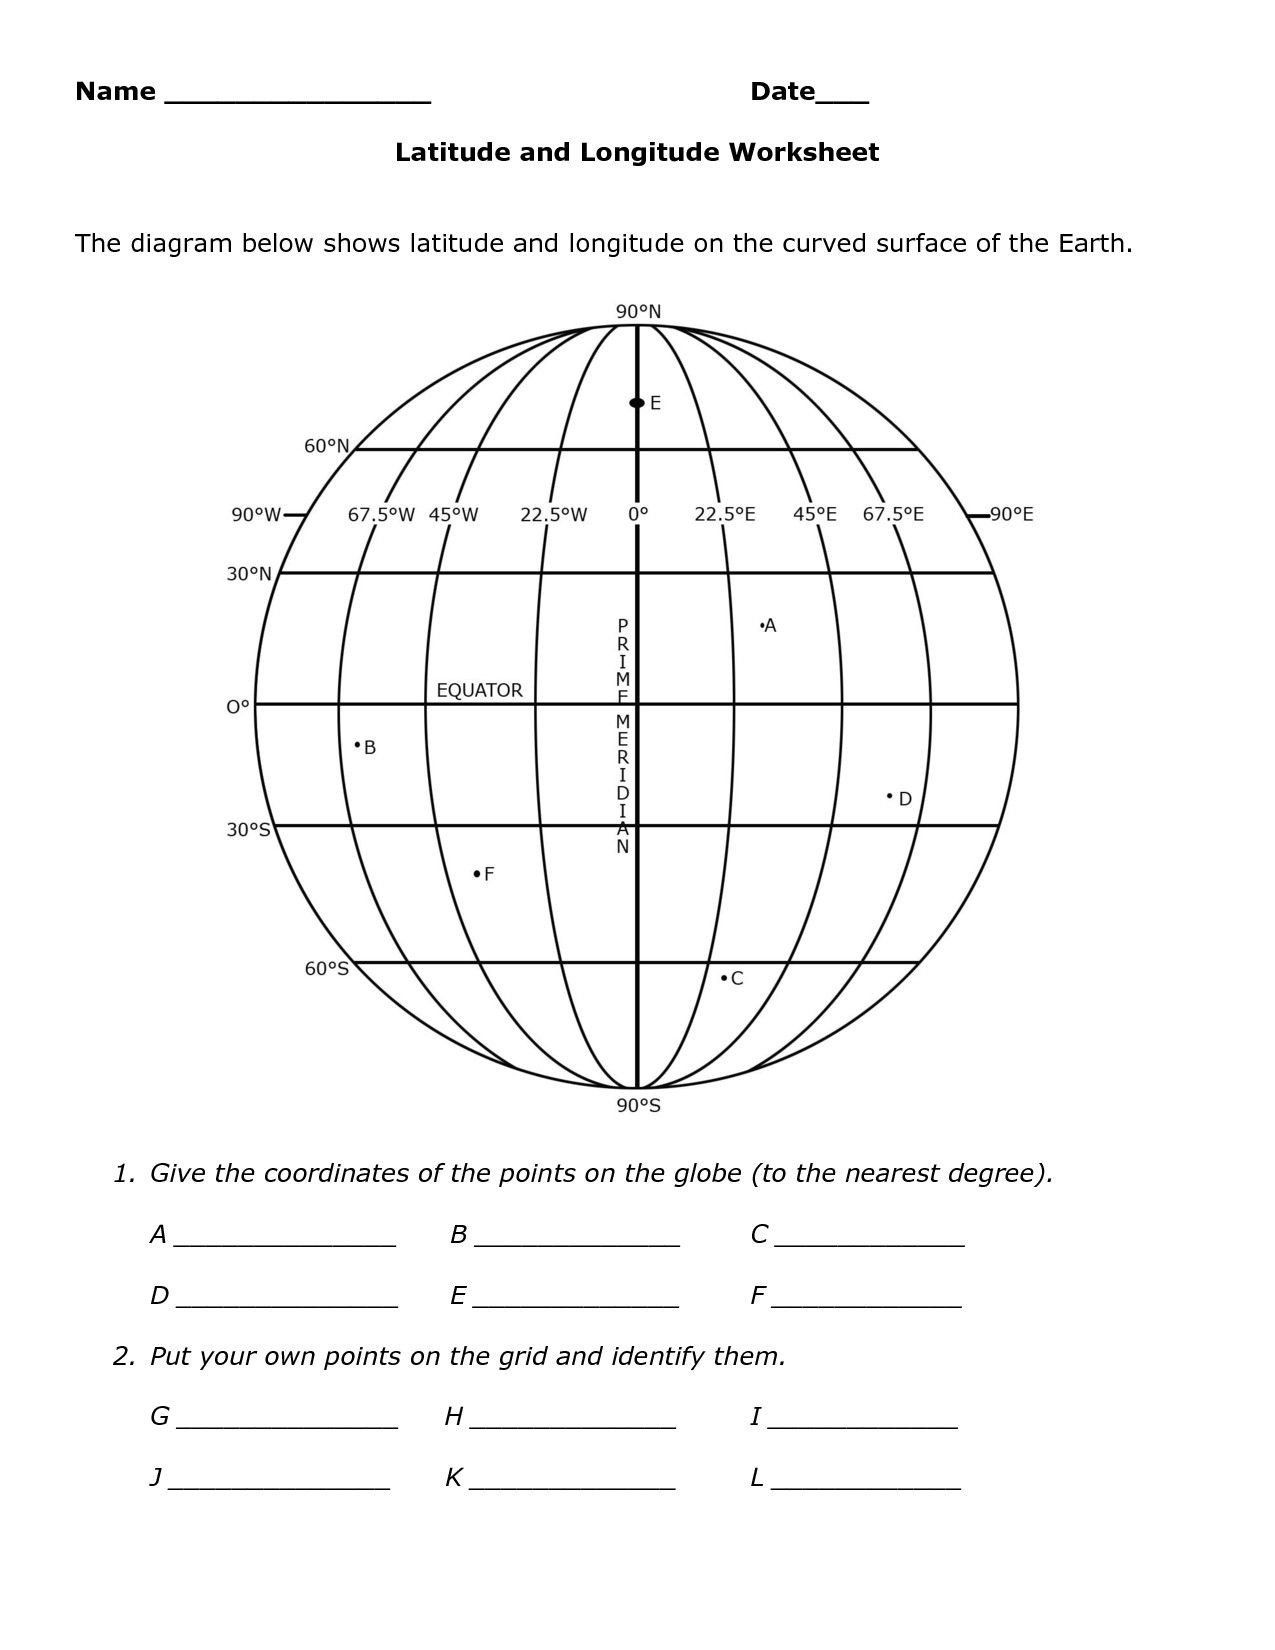 20 Latitude And Longitude Worksheet Answers